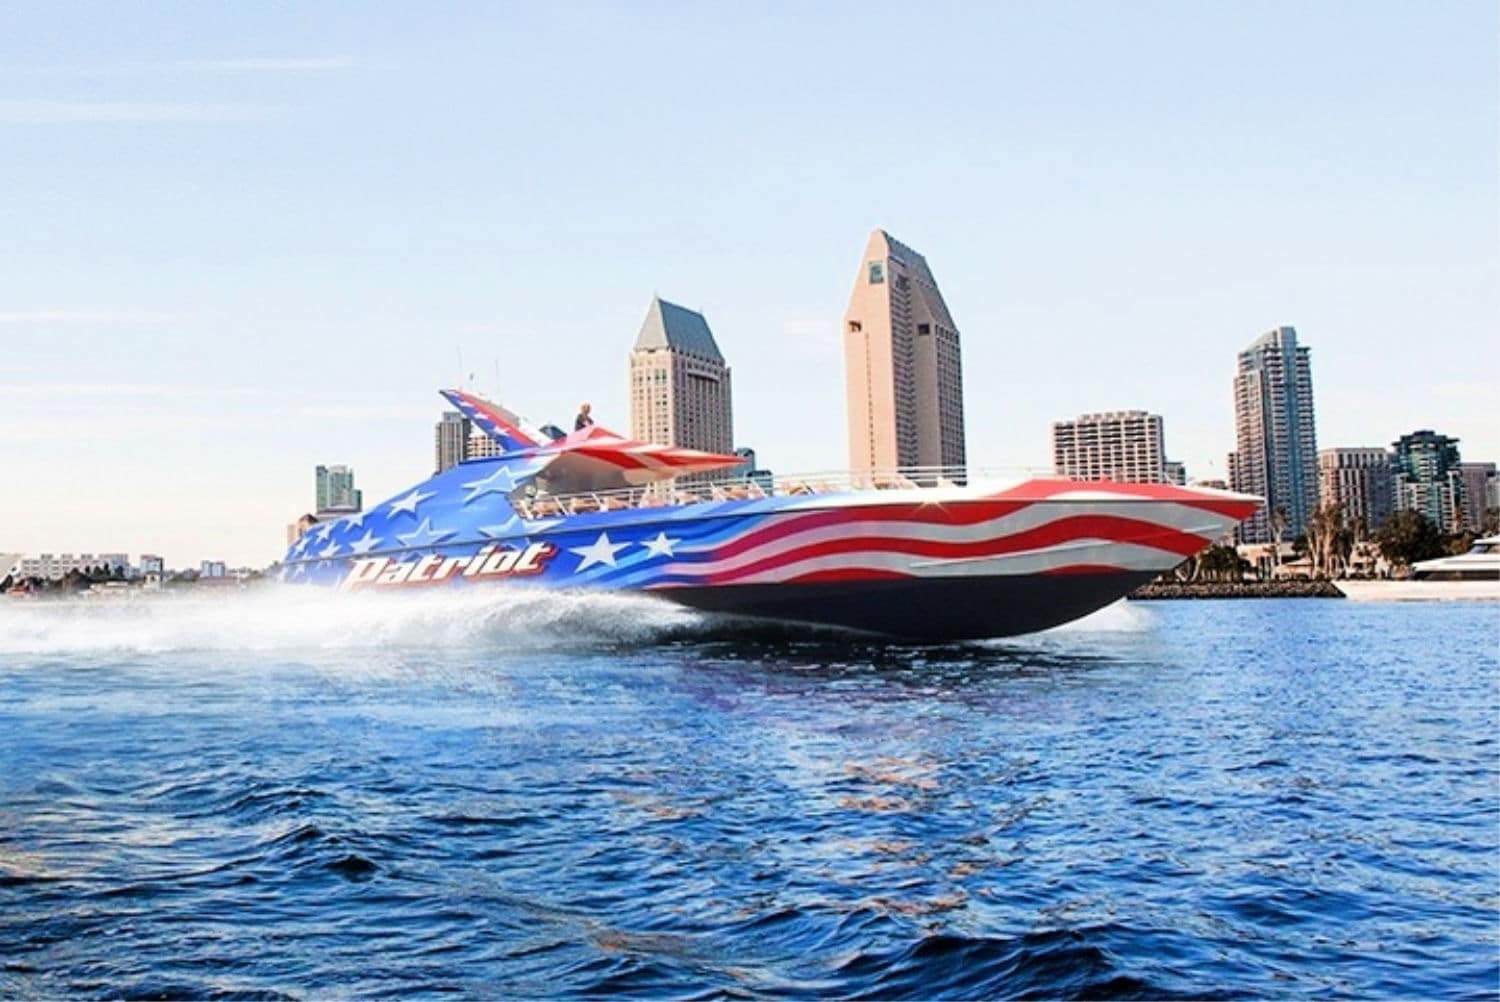 San Diego Tours: Patriot Jet Boat Thrill Ride